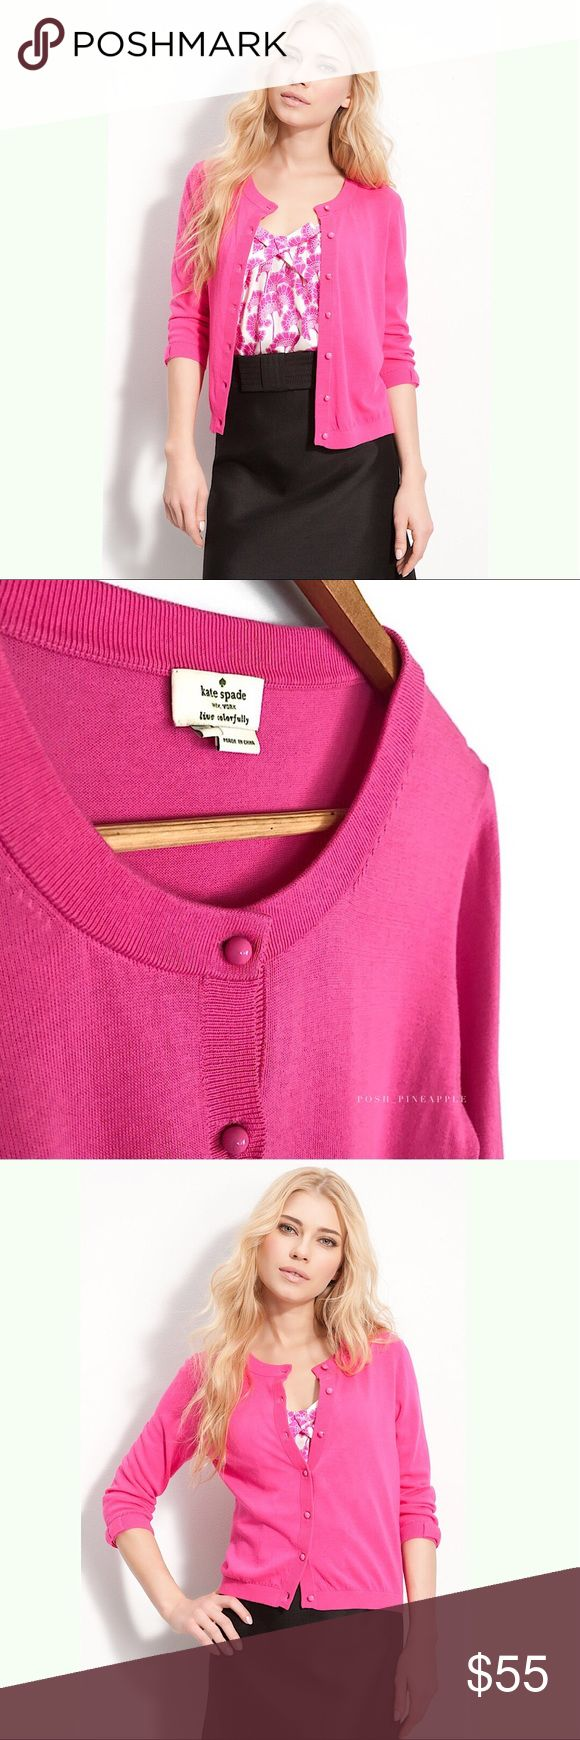 """K a t e S p a d e • C a r d i g a n • Sz M 'caroline' cardigan KATE SPADE NEW YORK Size Medium   🍍 Excellent pre-owned condition  📸 Watermark photos are of the actual item you will receive  🖍  Color may differ slightly from photos due to different monitor settings or photo lights   Bright, cheery cardigan is trimmed with glossy enameled buttons and bow-accented sleeves. * Approx. length from shoulder: 22 1/2"""". * Cotton/acrylic; dry clean. * By kate spade new york; imported…"""